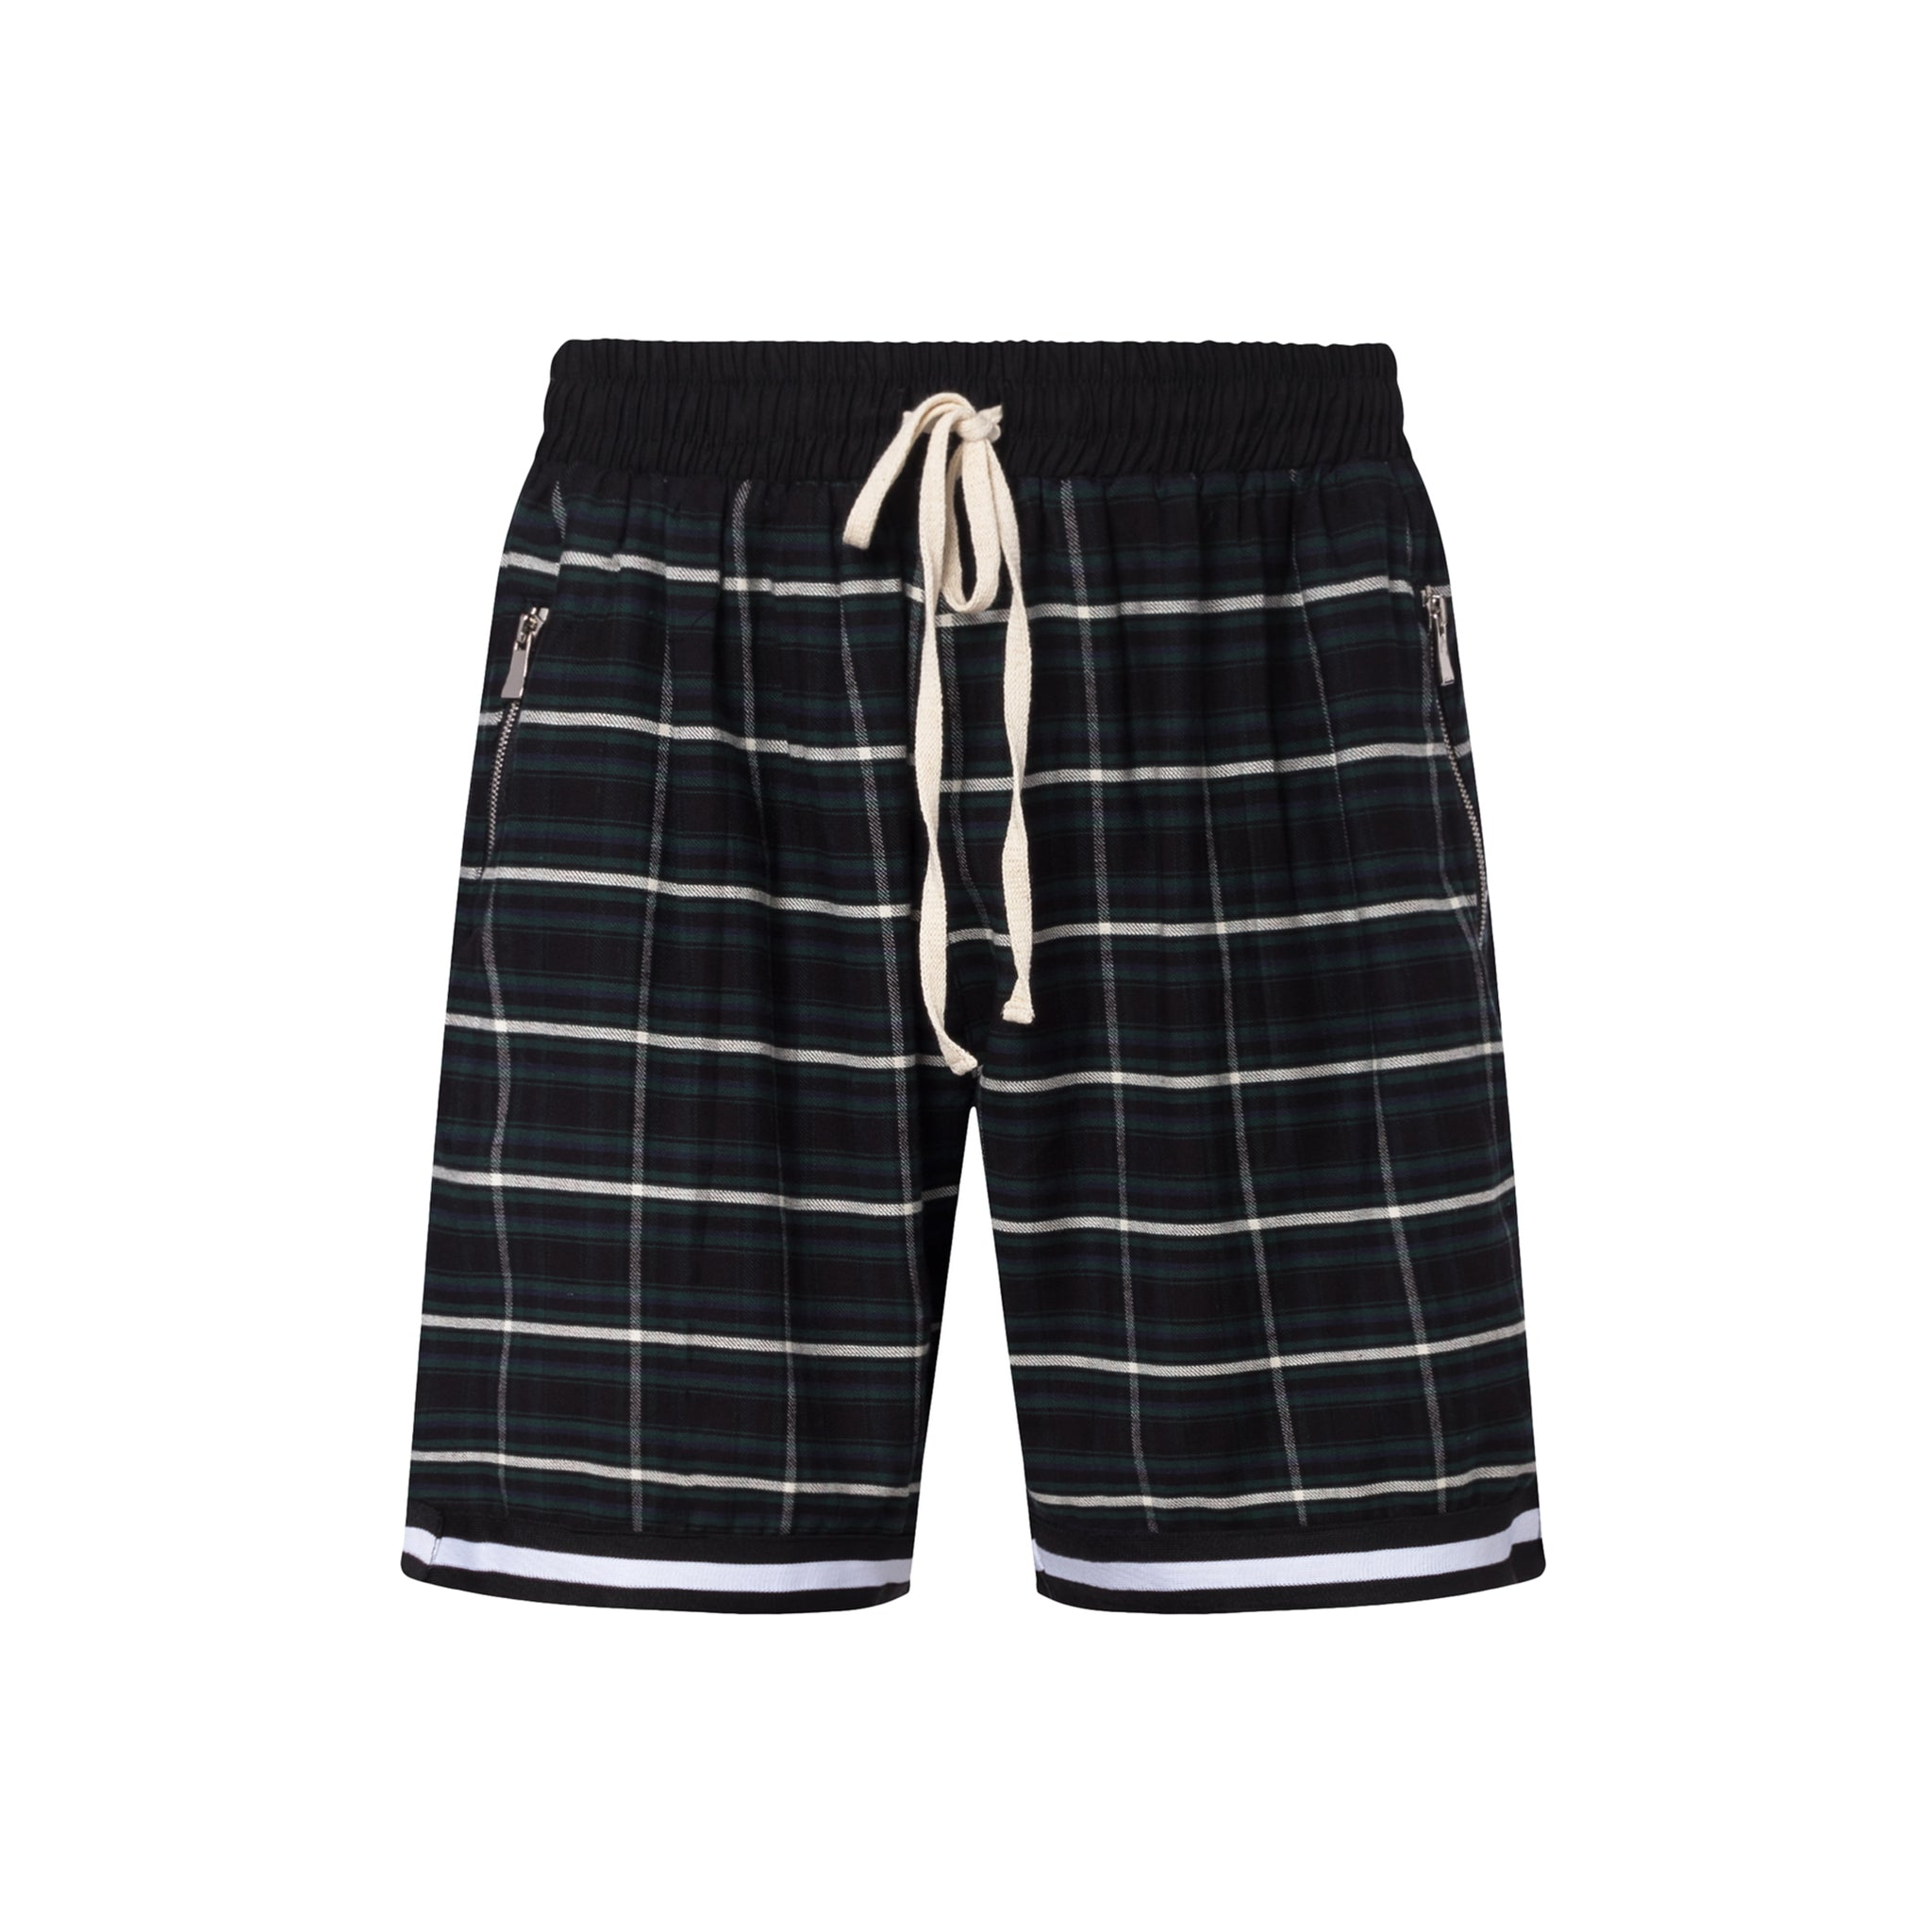 Christos Dinero Plaid Short on Well(un)known Wellunknown.com